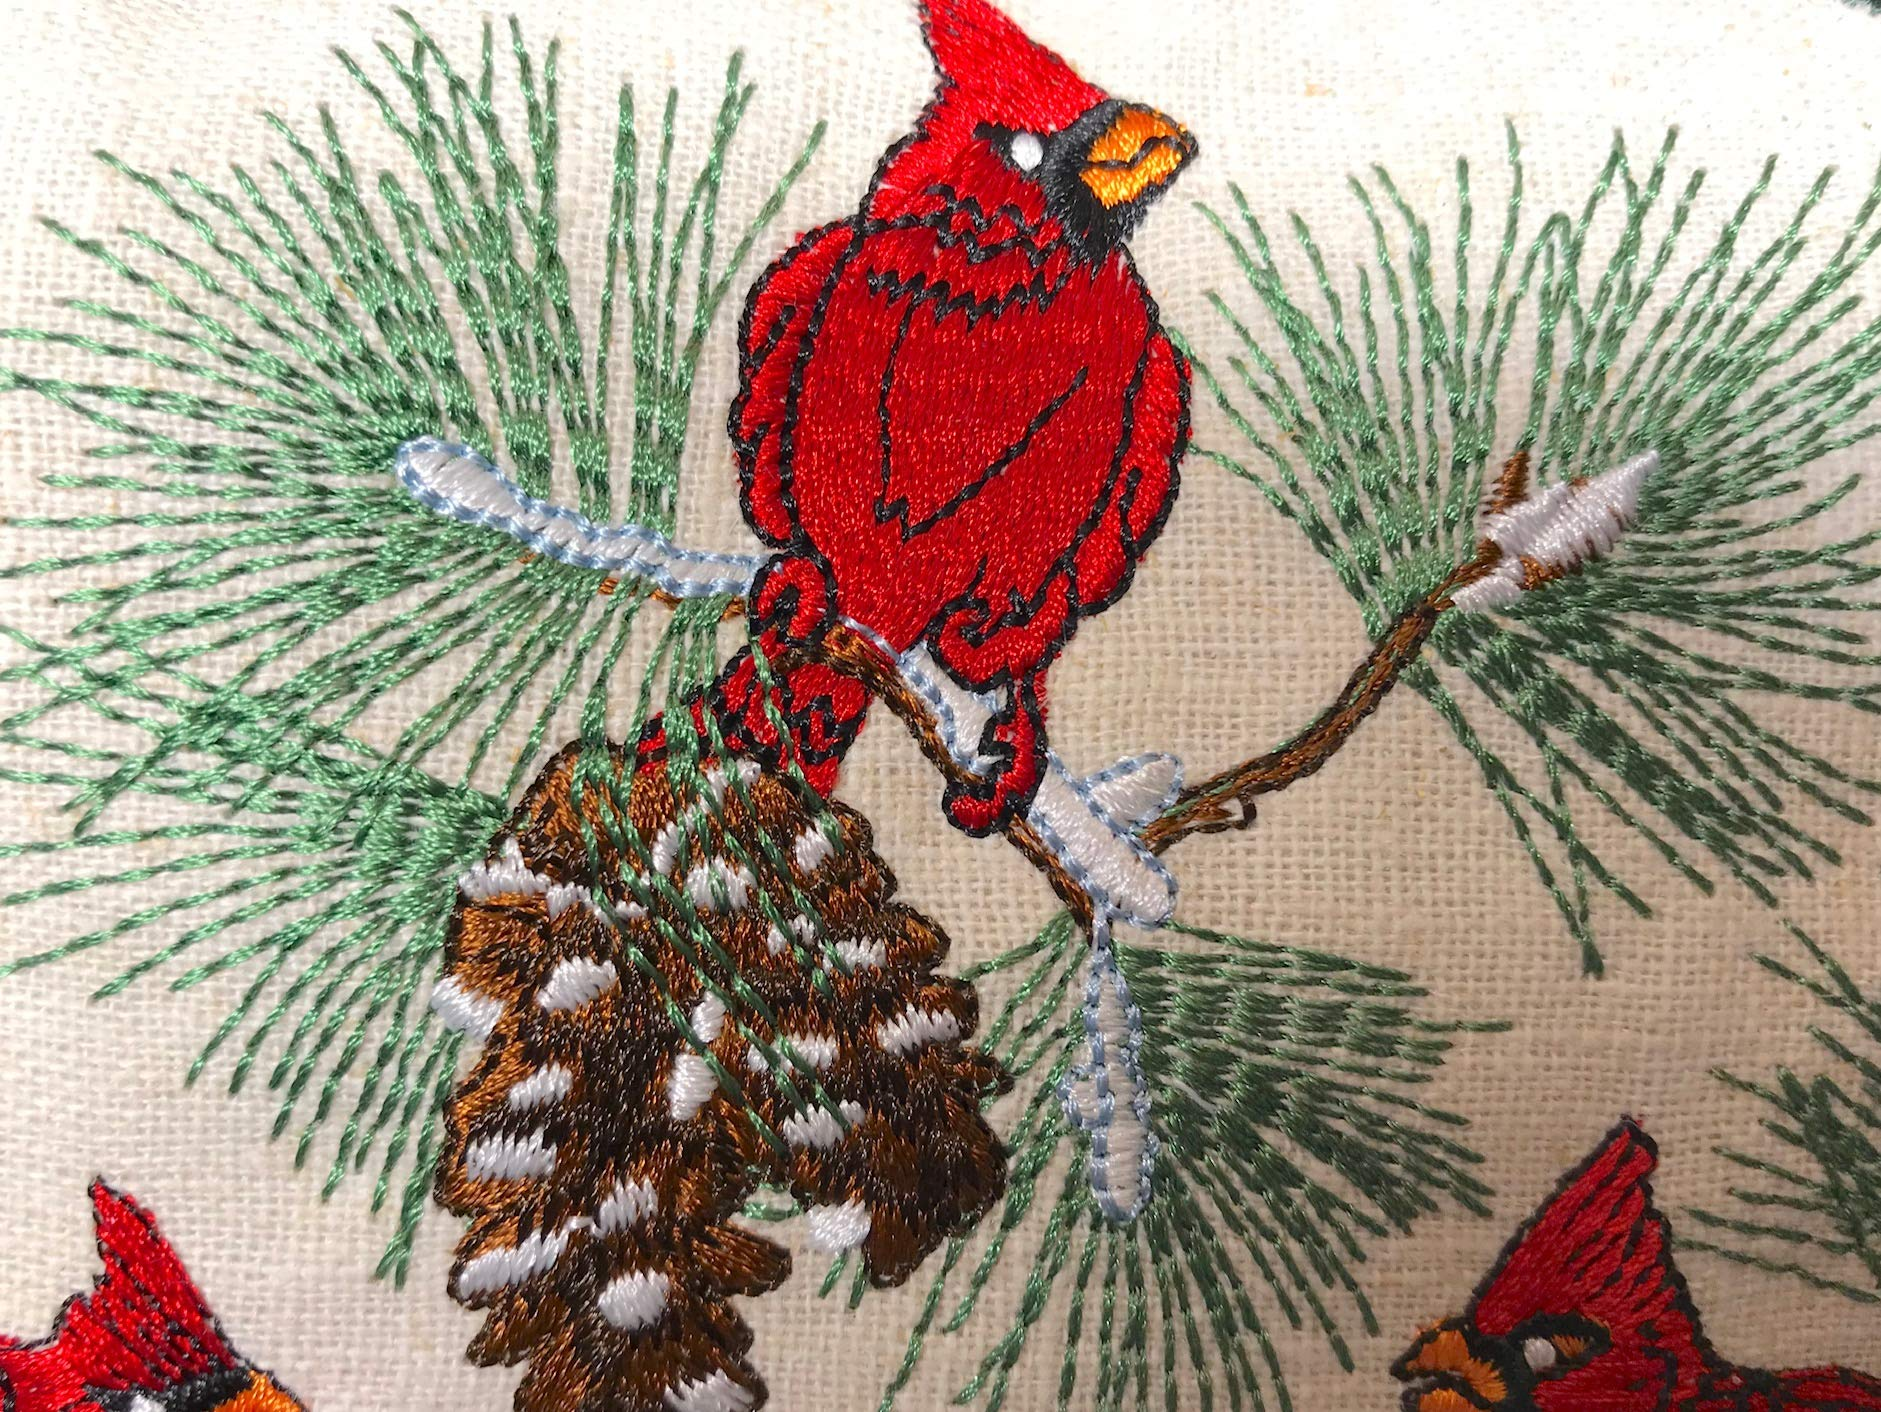 Paine's Balsam Fir Pillow 6''x9'' Embroidered Sampler Cardinals Pine Cones Birds by Paine's (Image #2)